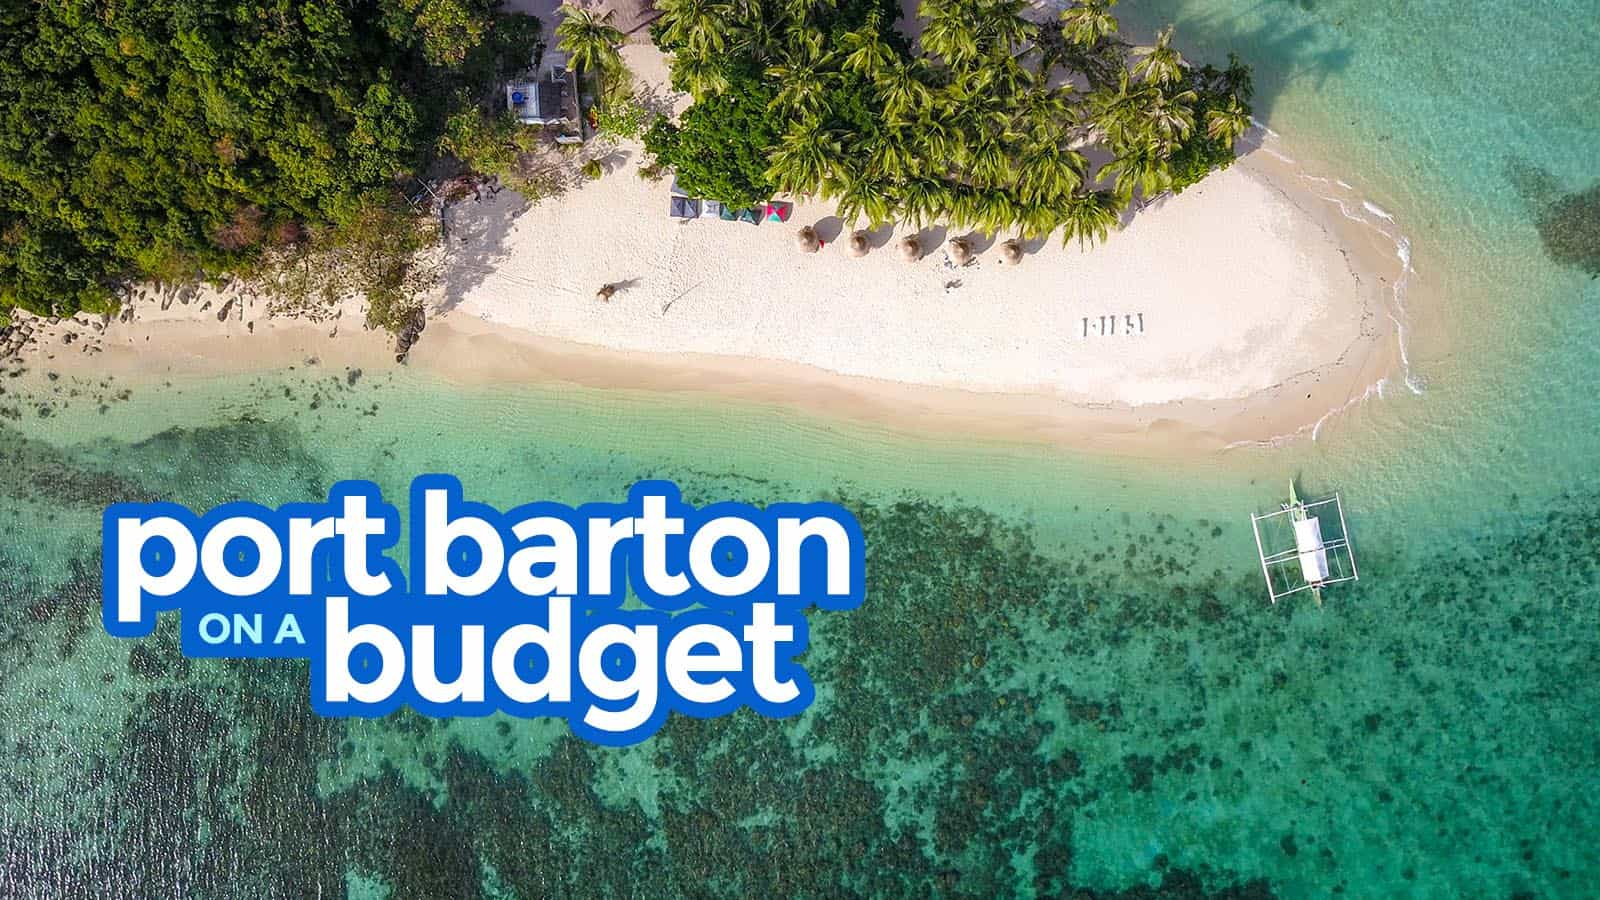 PORT BARTON: Travel Guide & Budget Itinerary